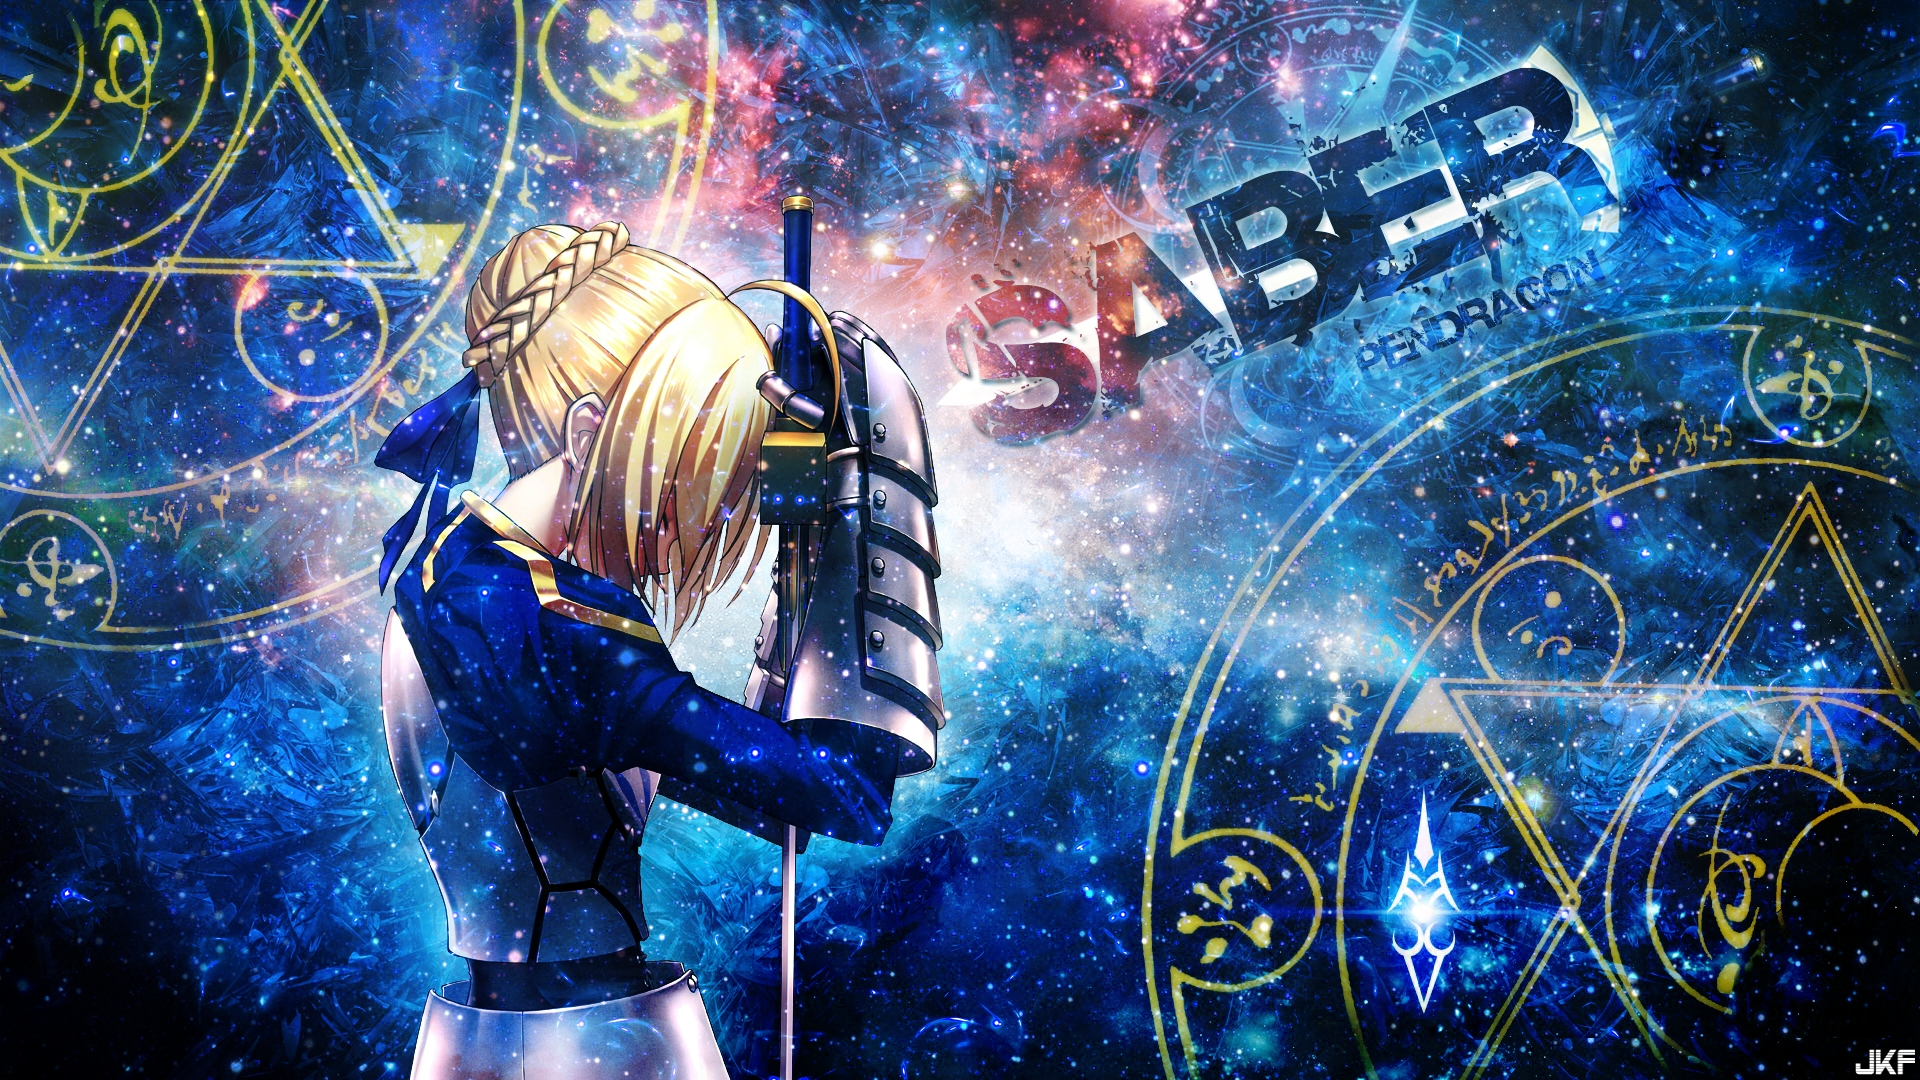 saber_wallpaper_2_by_dinocojv-d8joqej.jpg